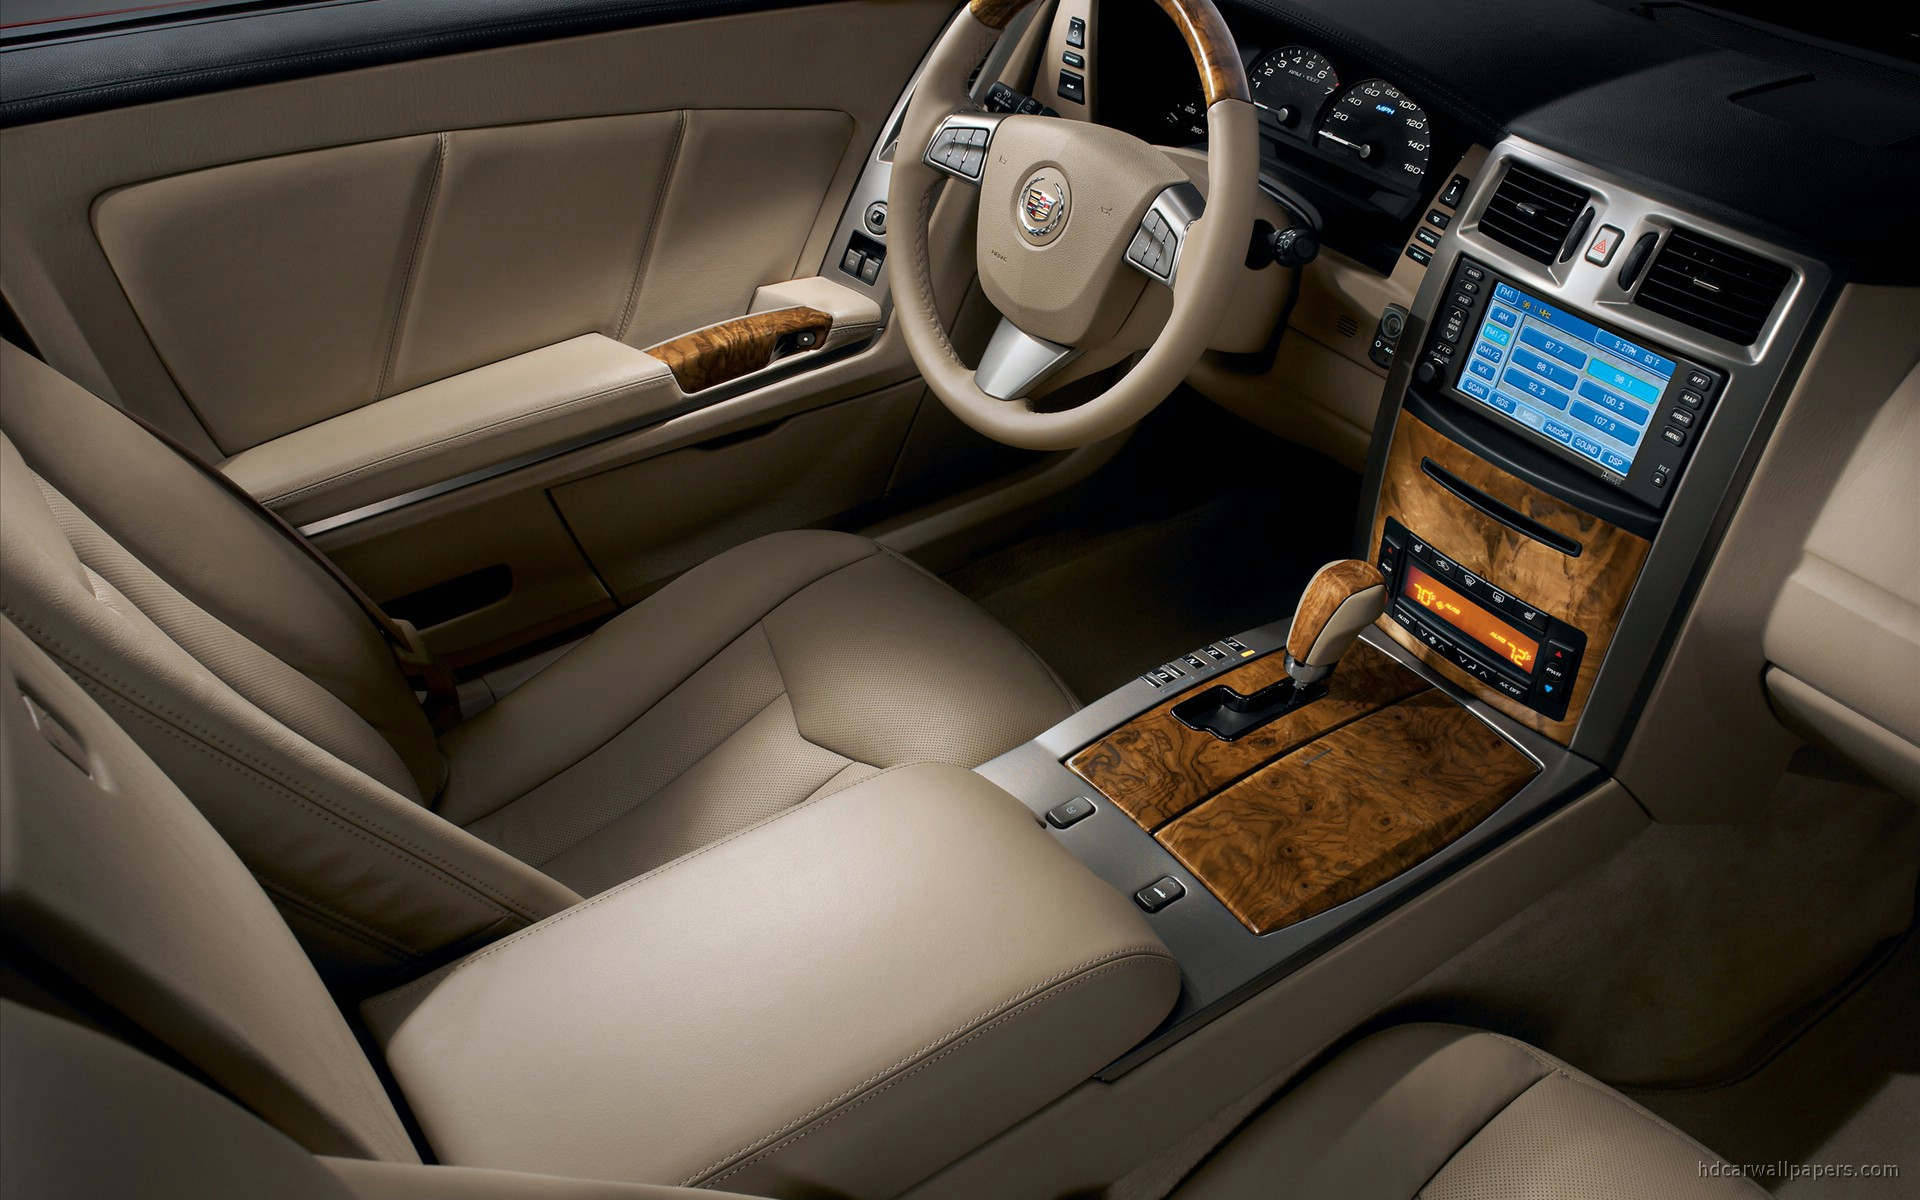 2009 Cadillac Xlr Interior Wallpaper Hd Car Wallpapers